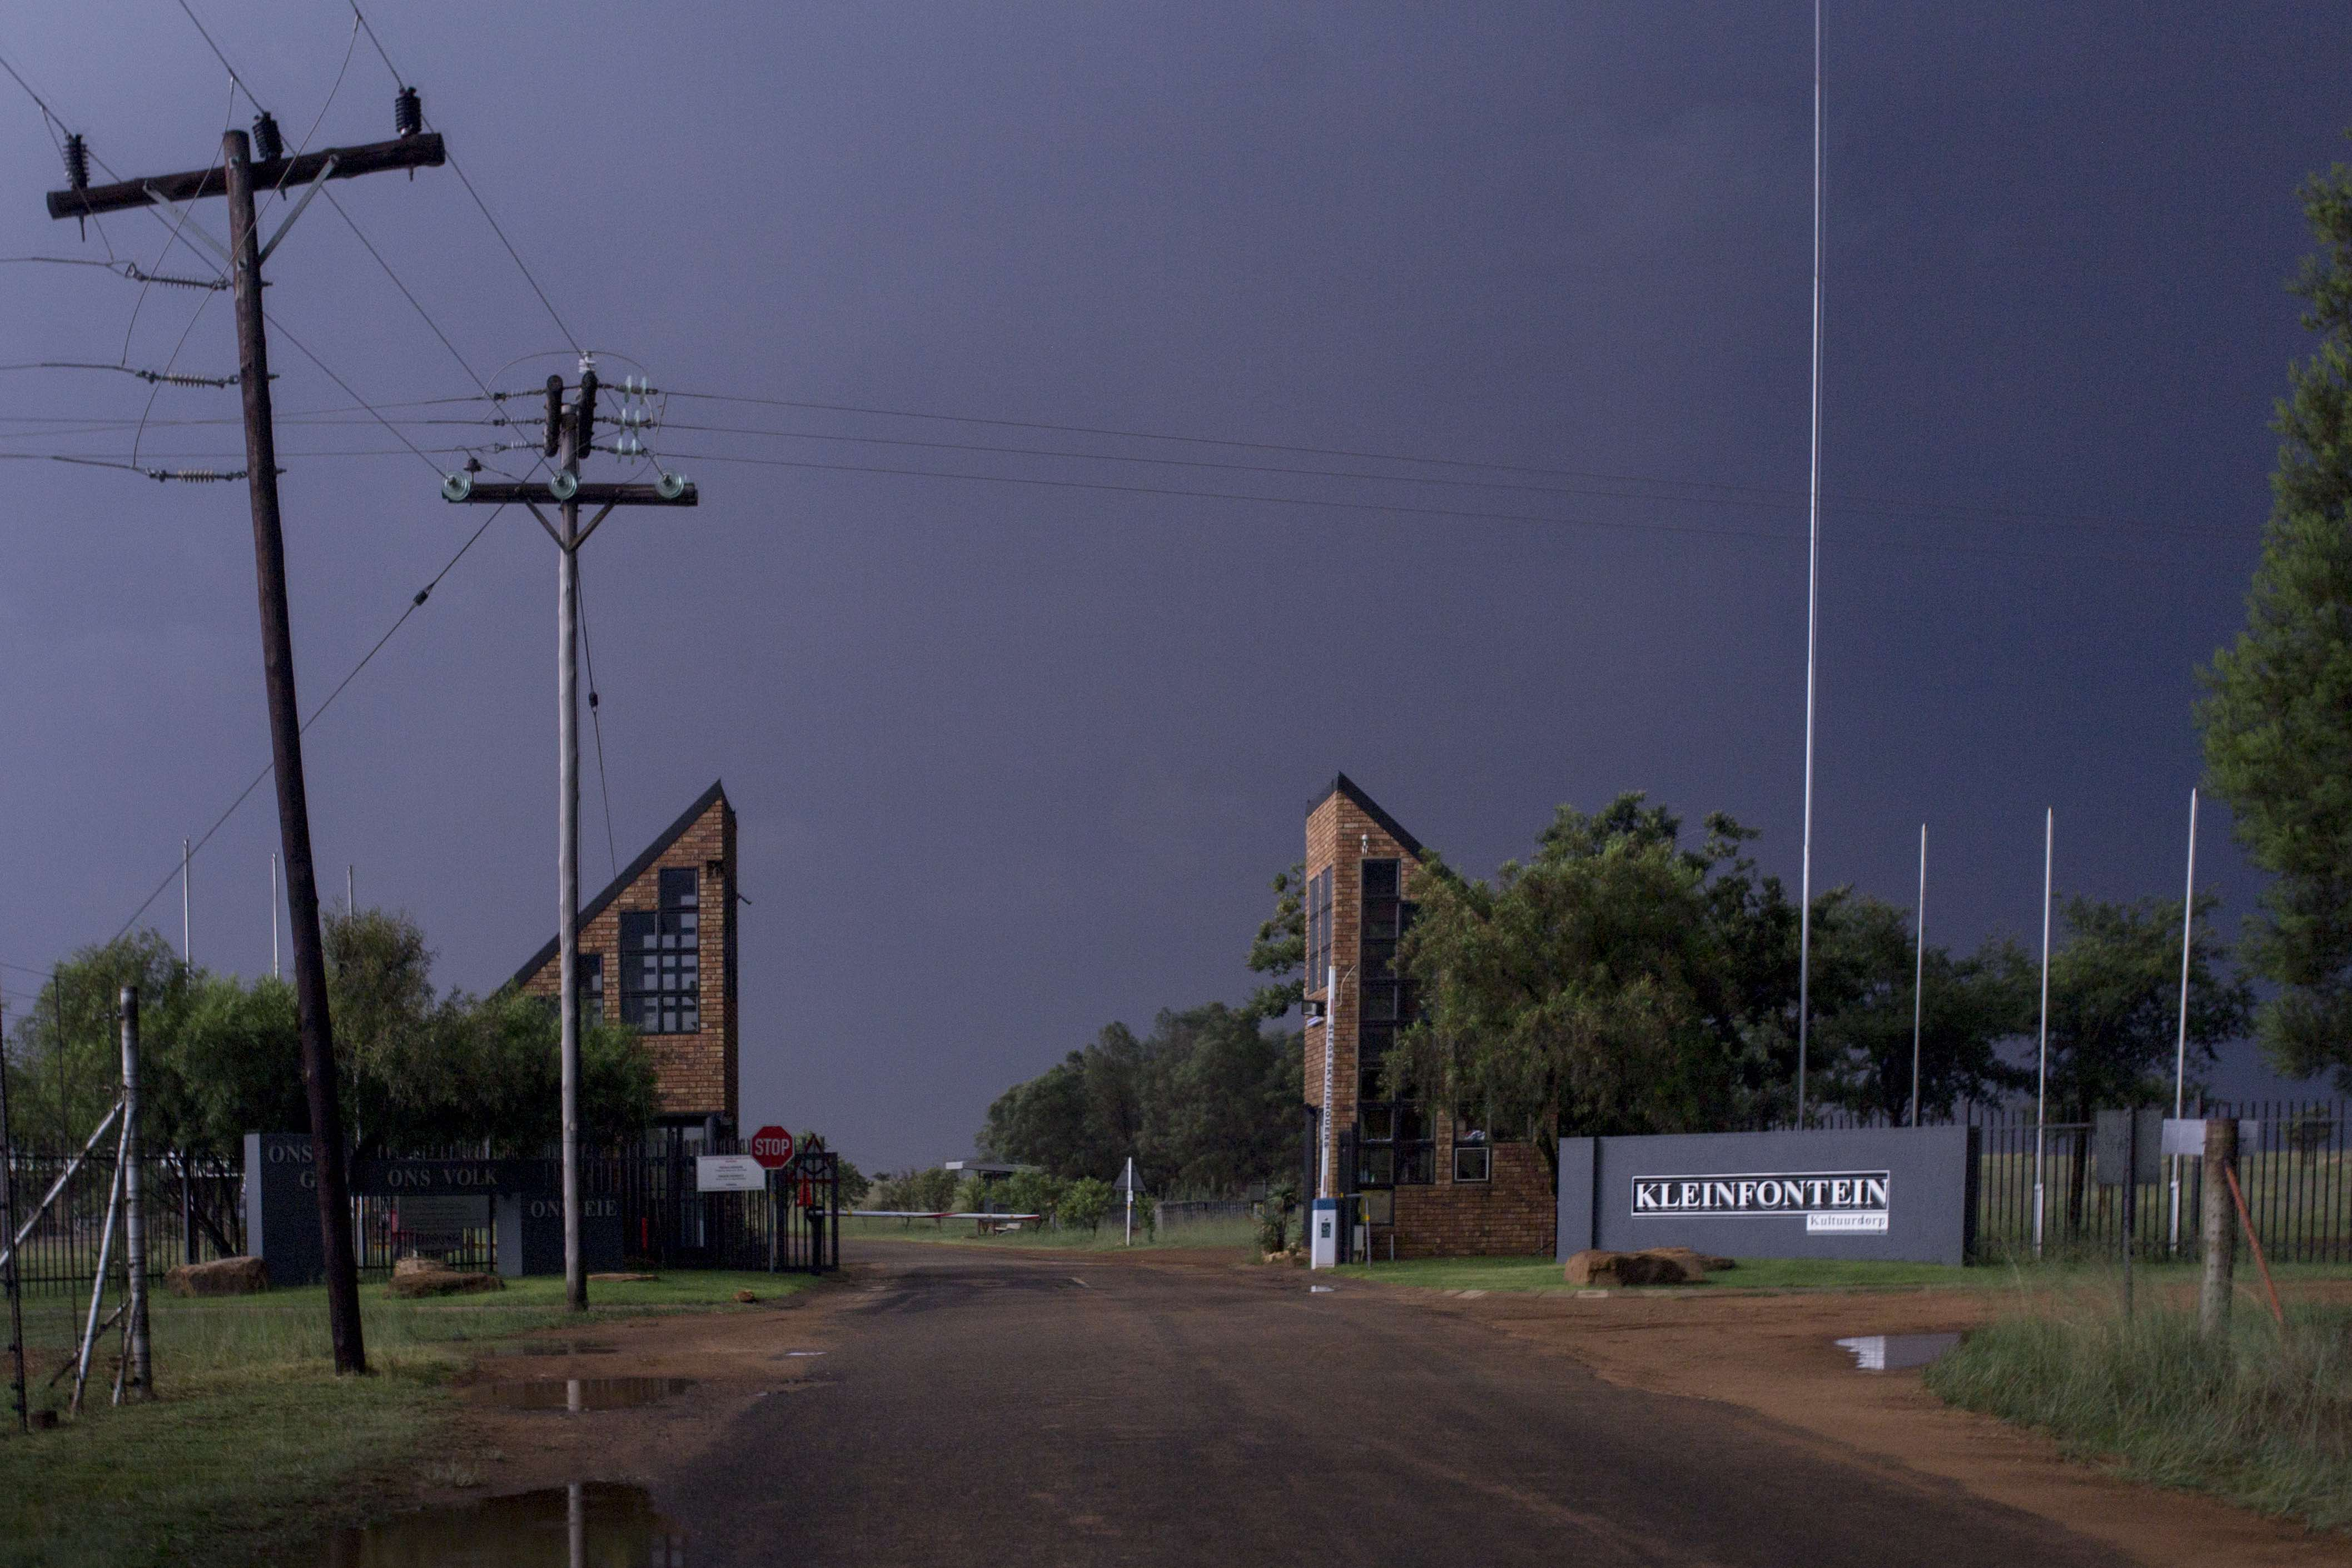 The Main Gate of Kleinfontein at nightime.